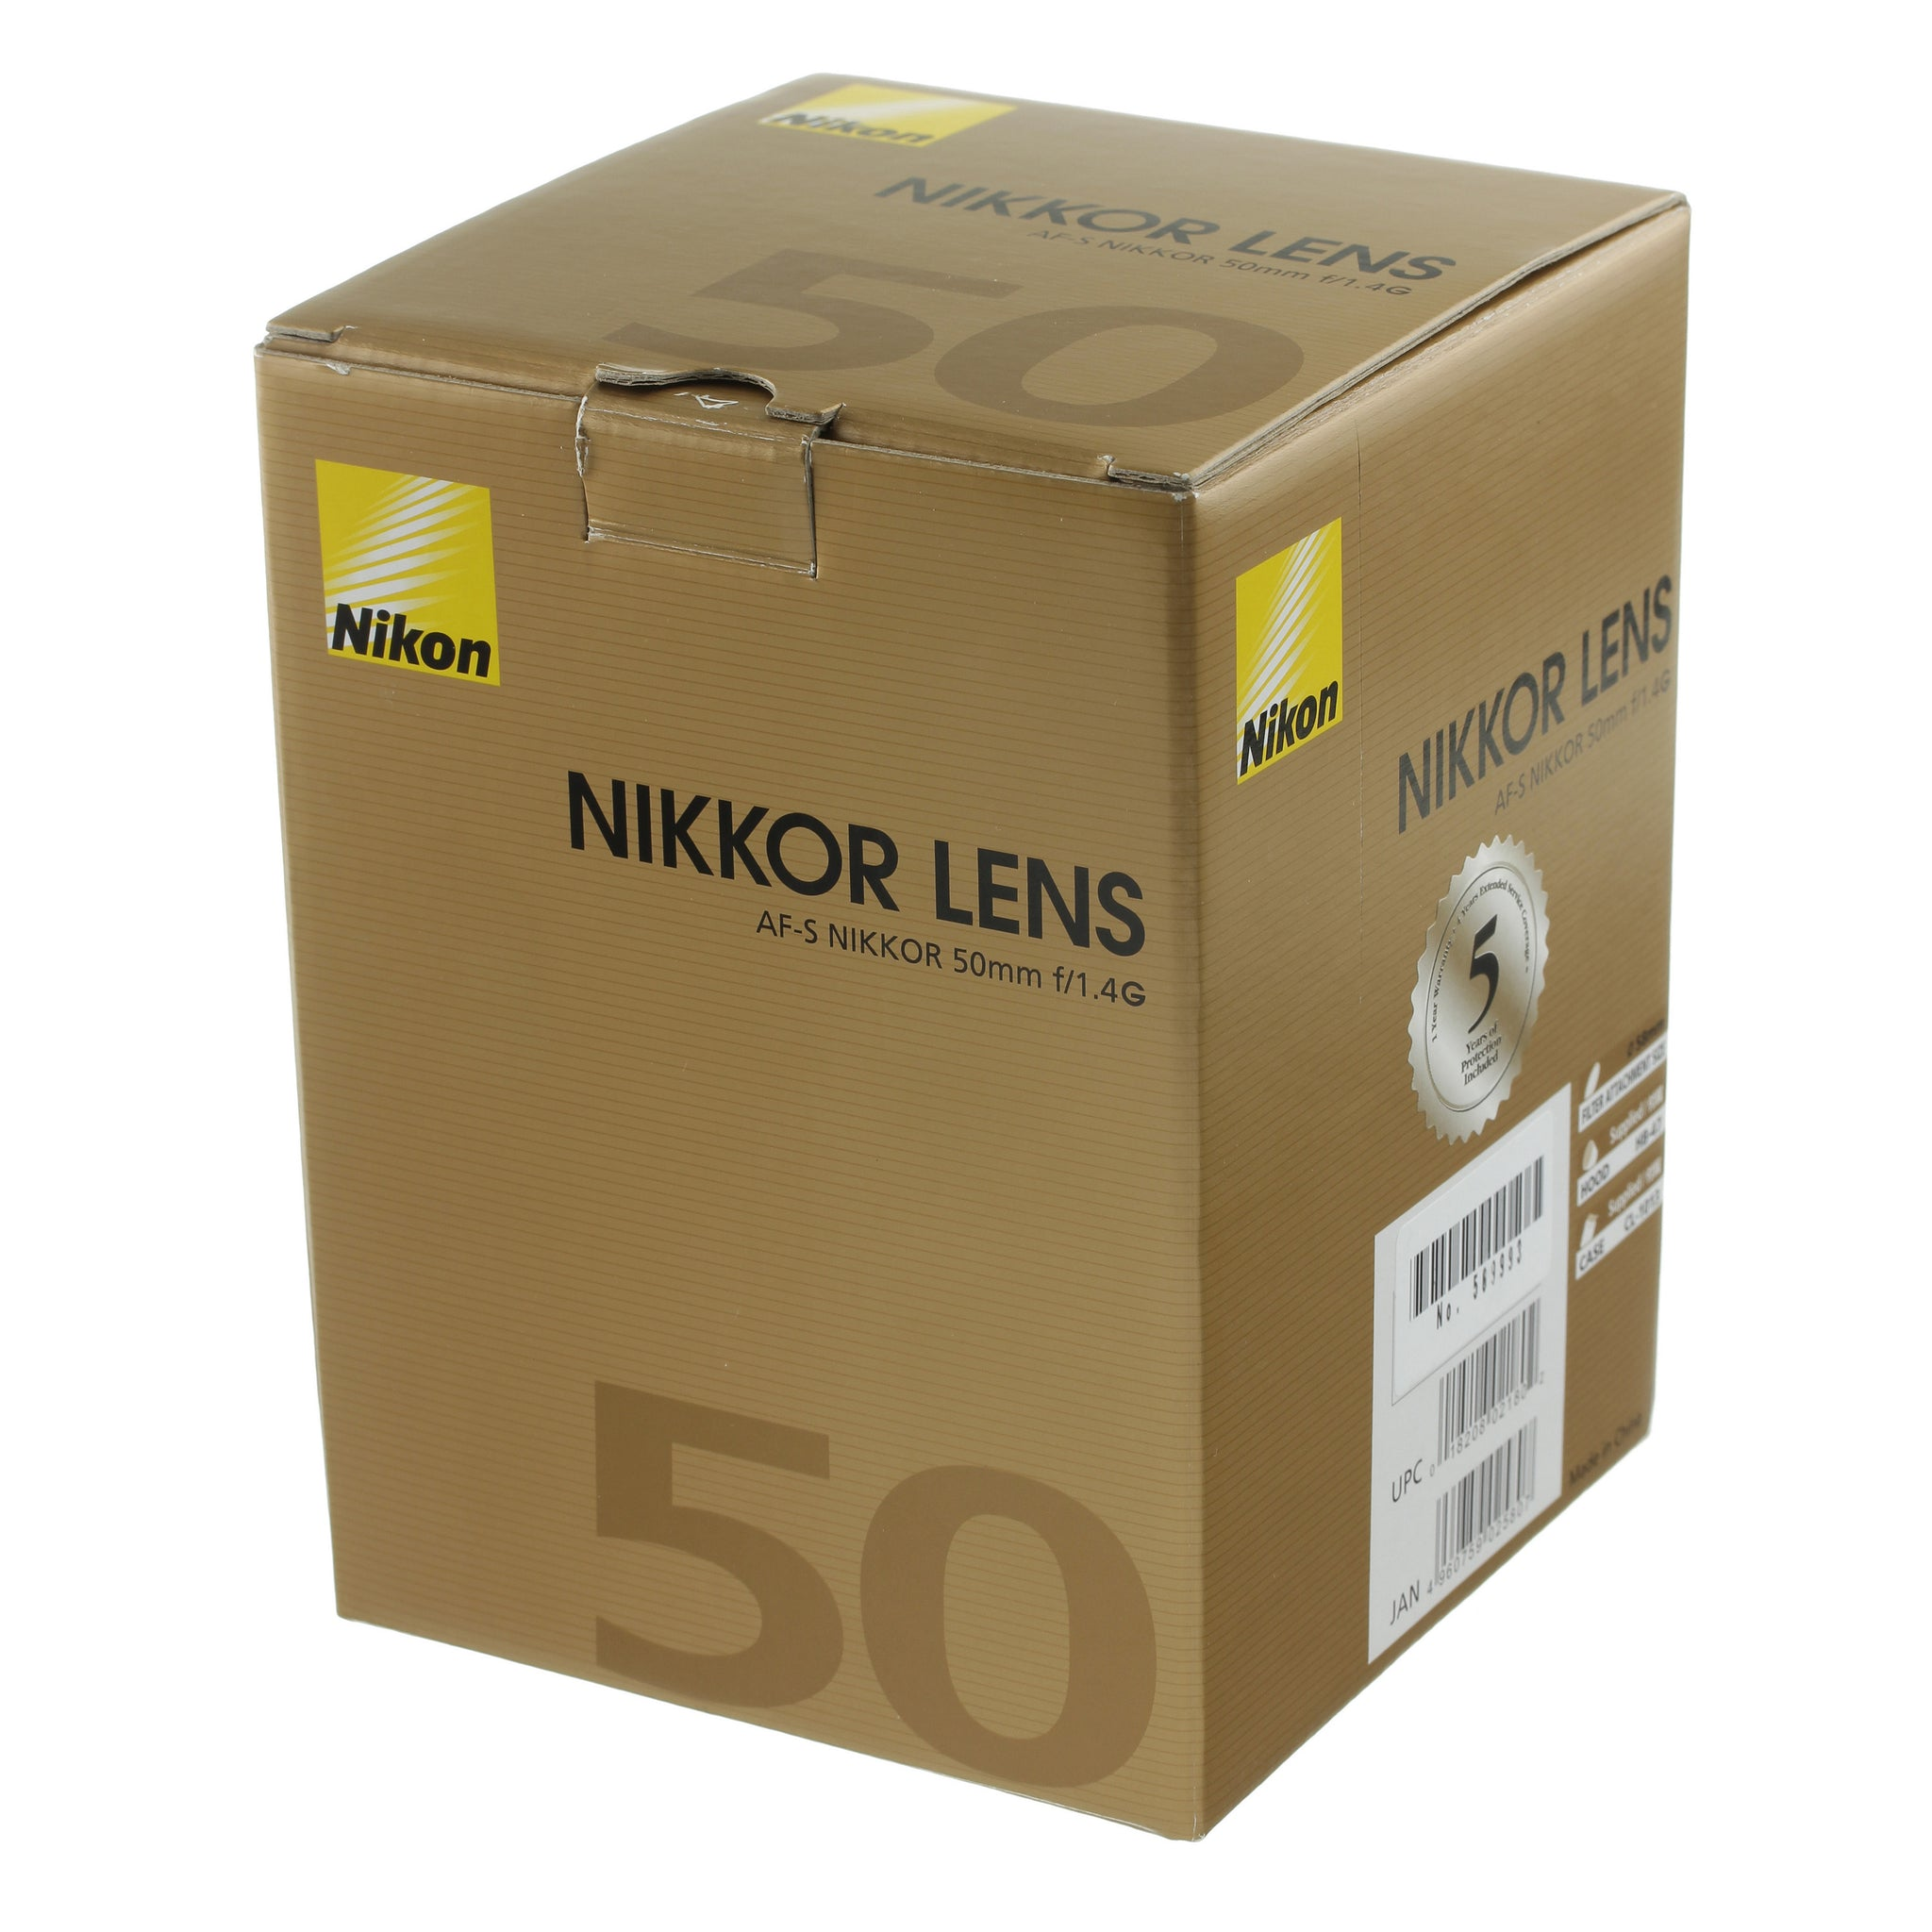 Nikon AF-S Nikkor 50mm 1.4 G Lens US Model Boxed Mint Condition